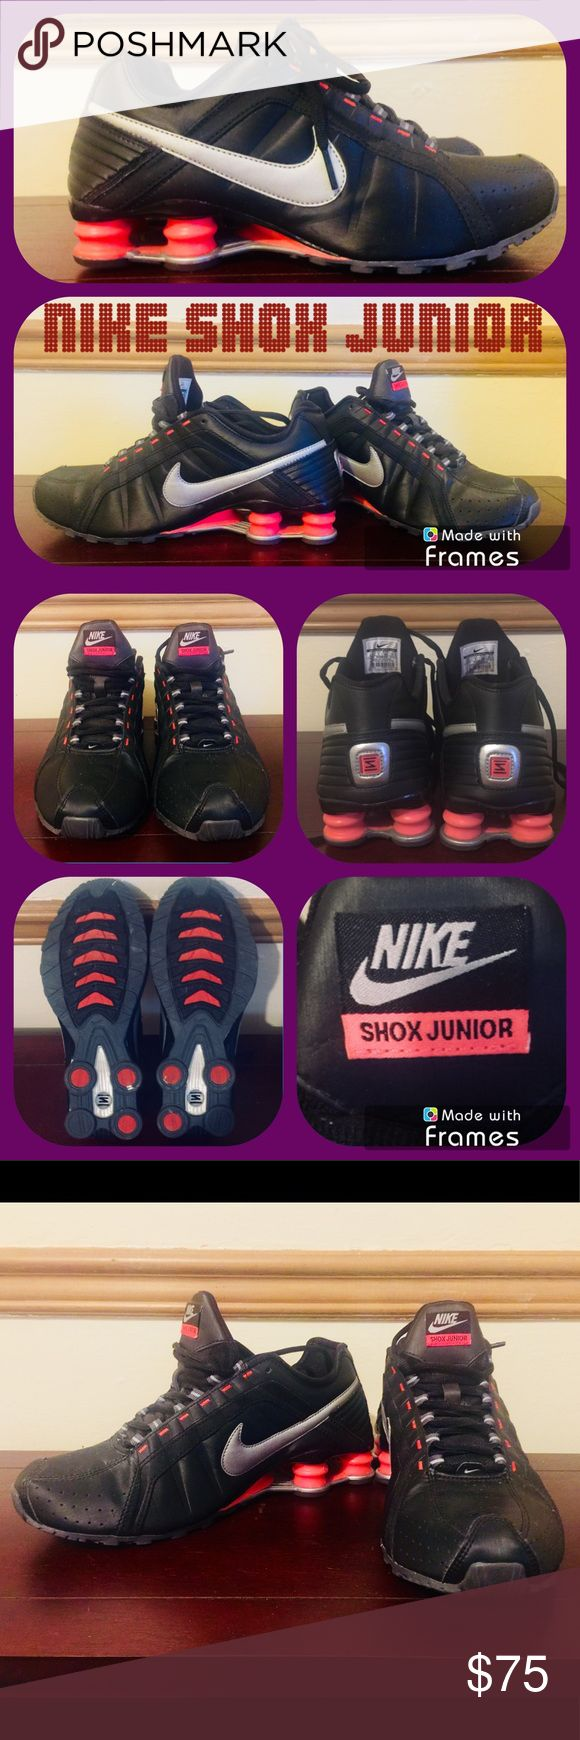 WMN Nike Shox Junior WMN NIKE Shox Junior! Size: 8.5. Color: Mandarin Orange & Jet Black. Very good condition. Nike Shoes Athletic Shoes